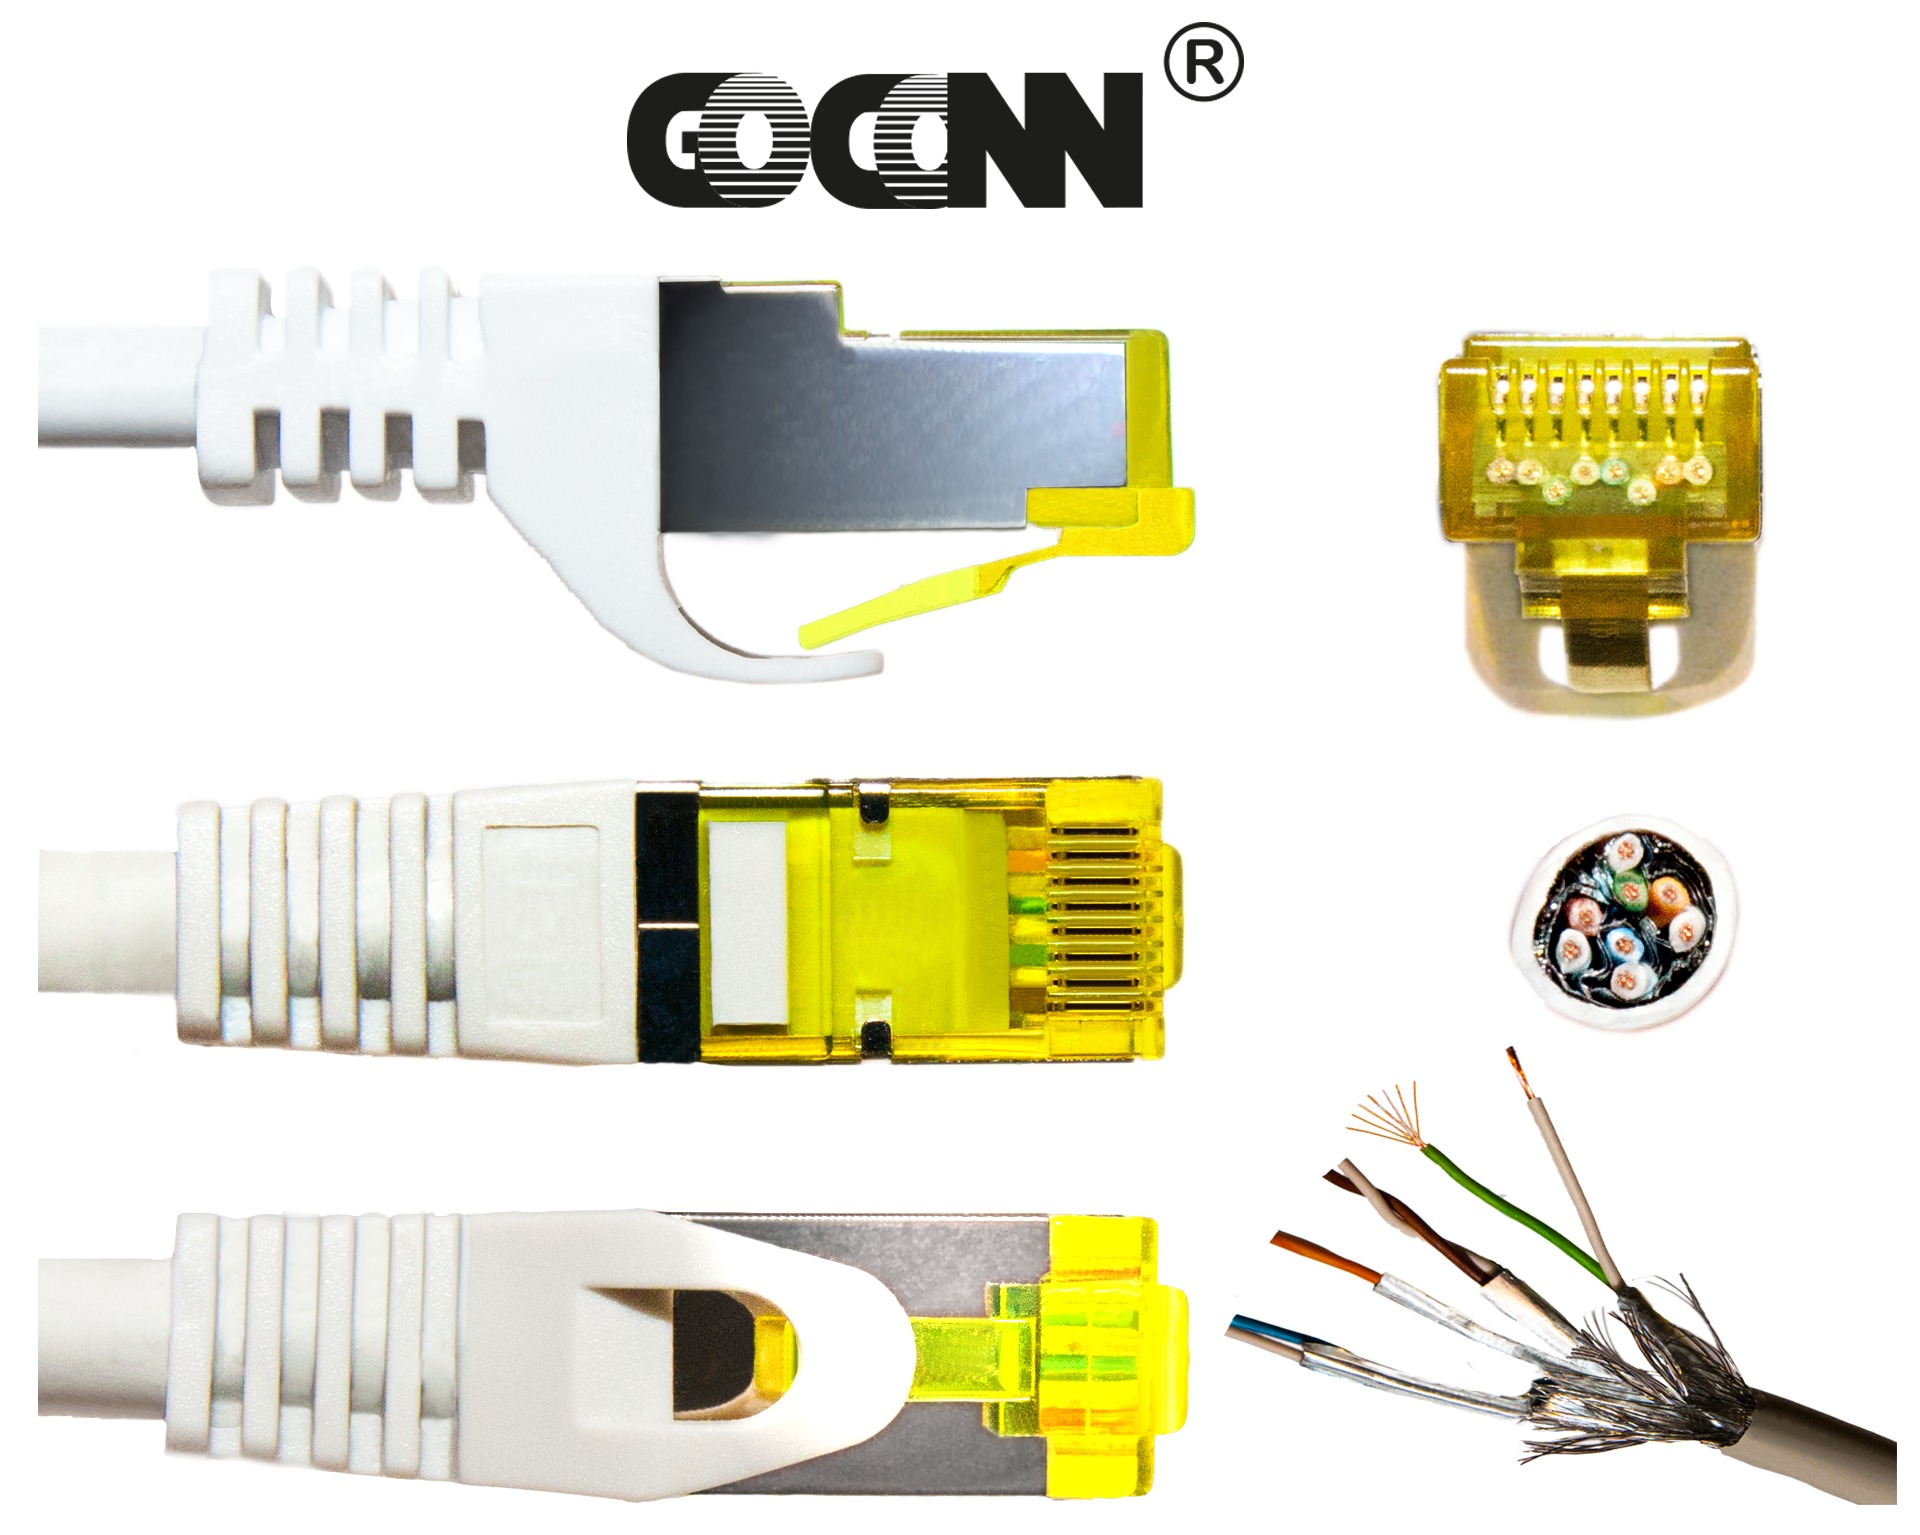 GoConn Patchkabel mit Cat7 Rohkabel 25cm orange S/FTP PiMF 500MHz 2xgeschirmt